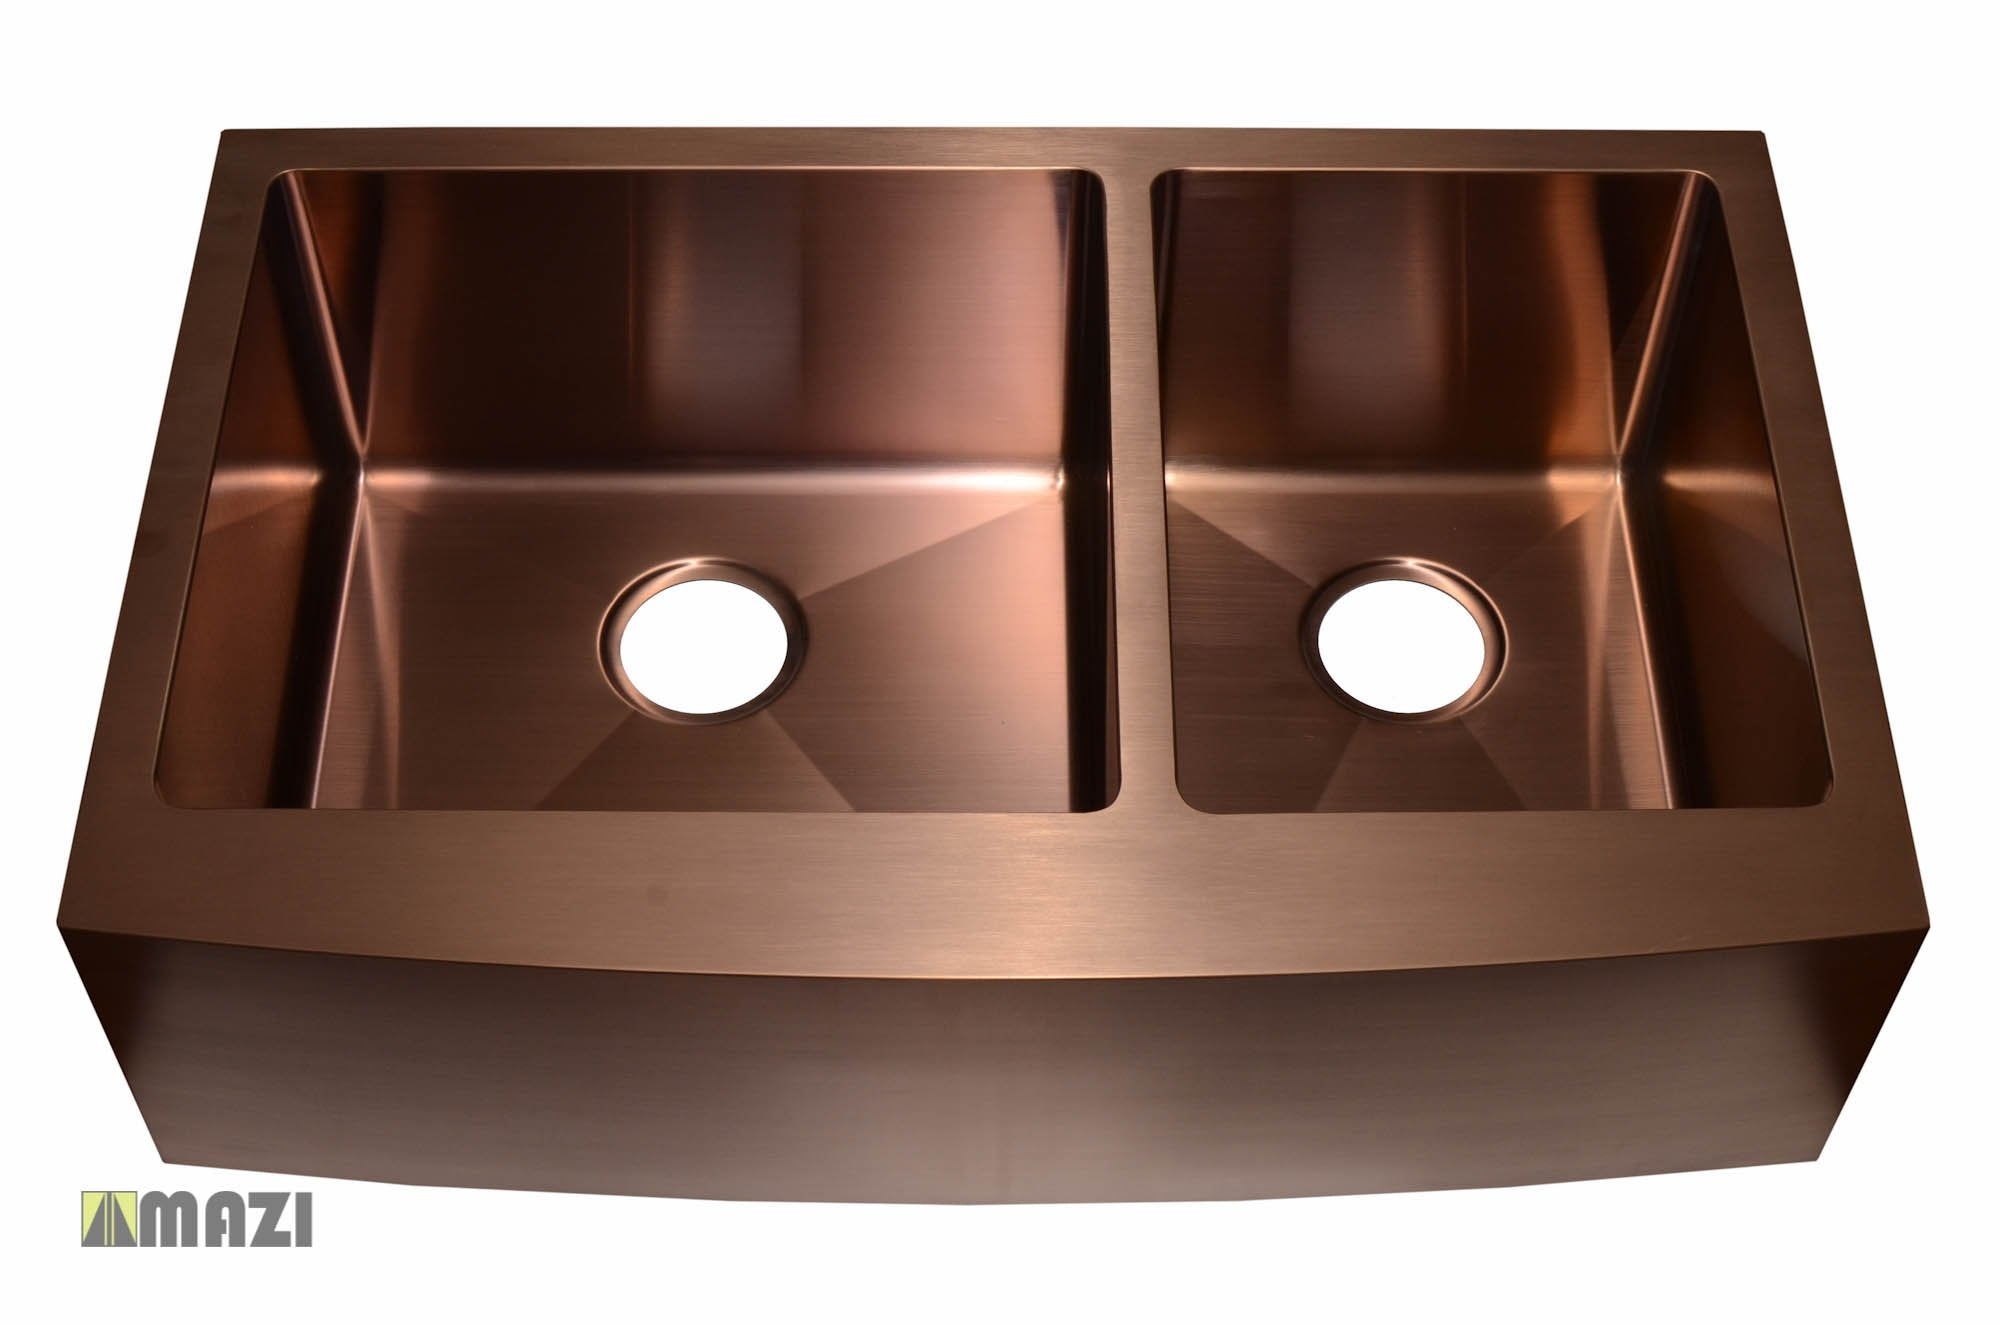 Stainless Steel Handmade Color Kitchen Sink Ac2002 Copper